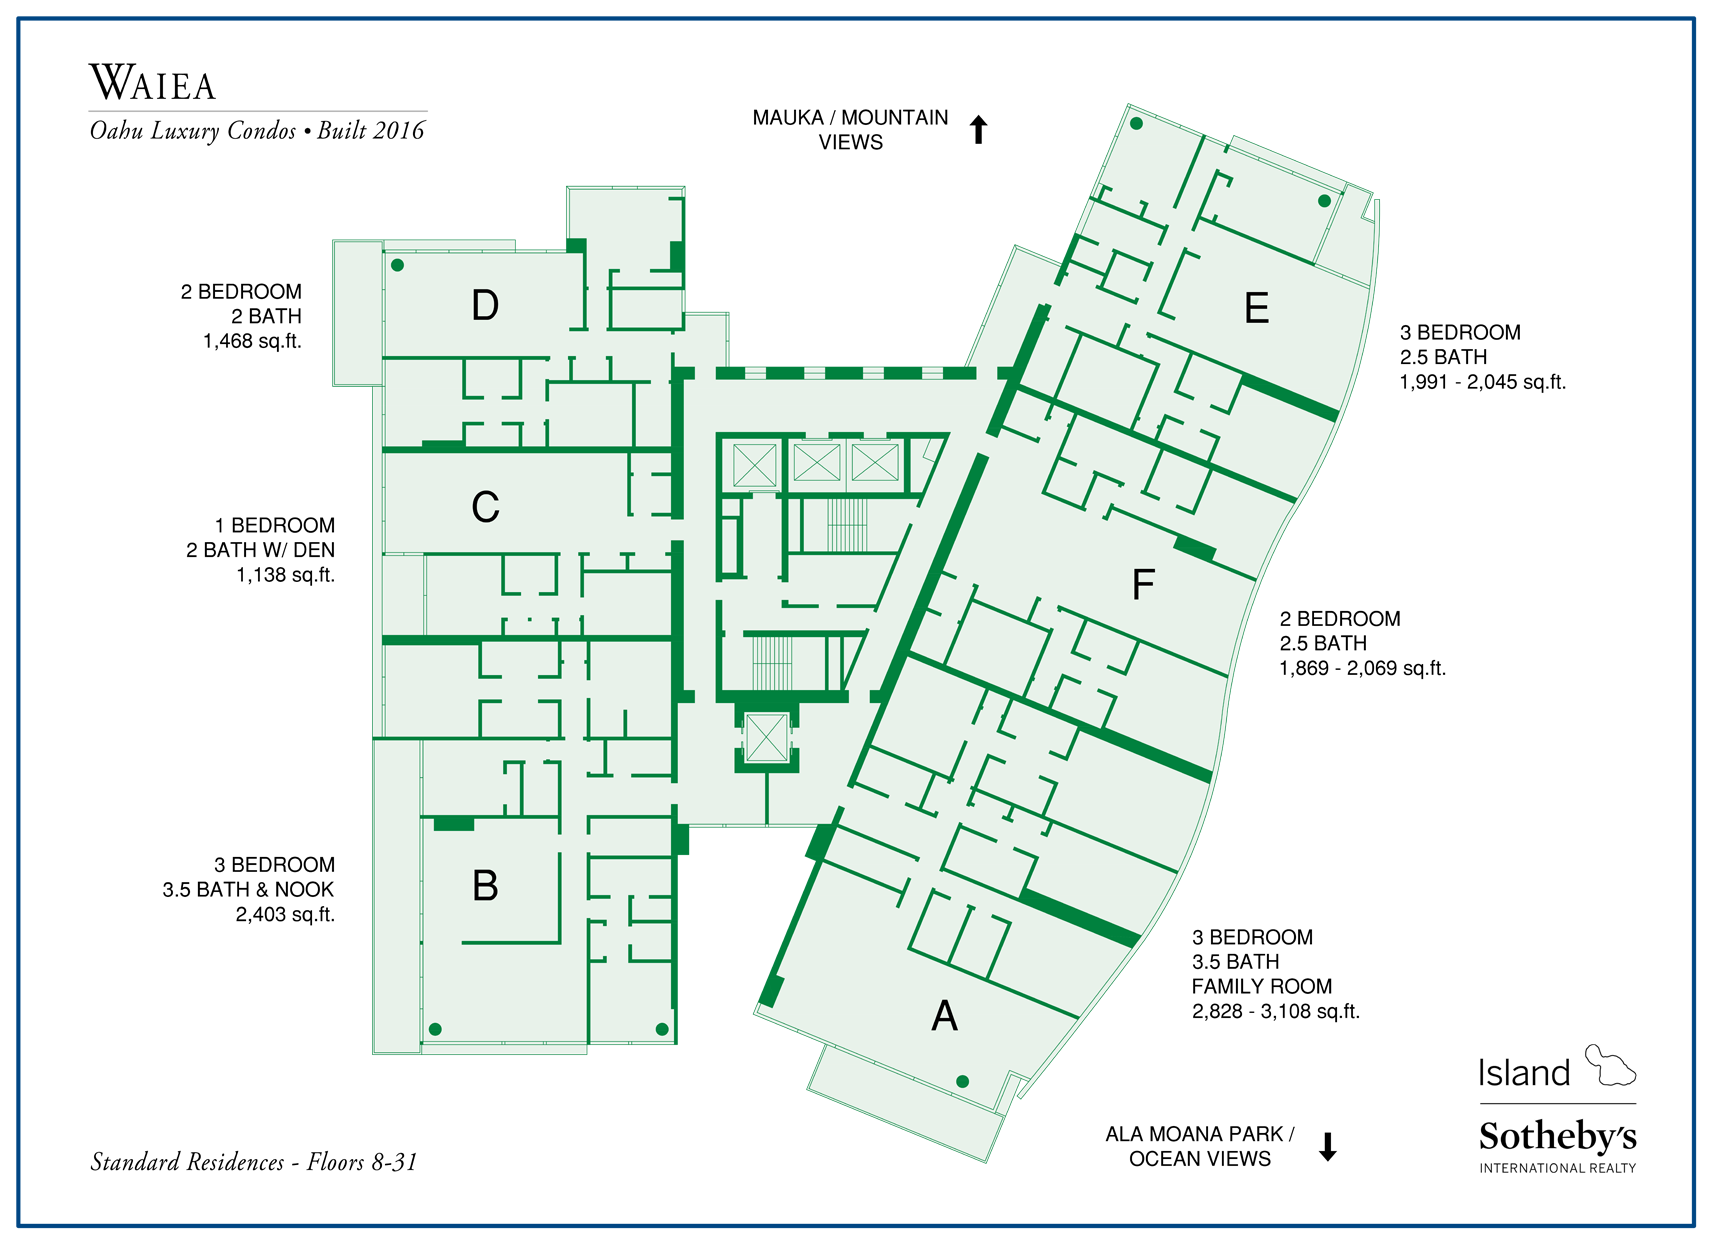 Waiea Condominium Map